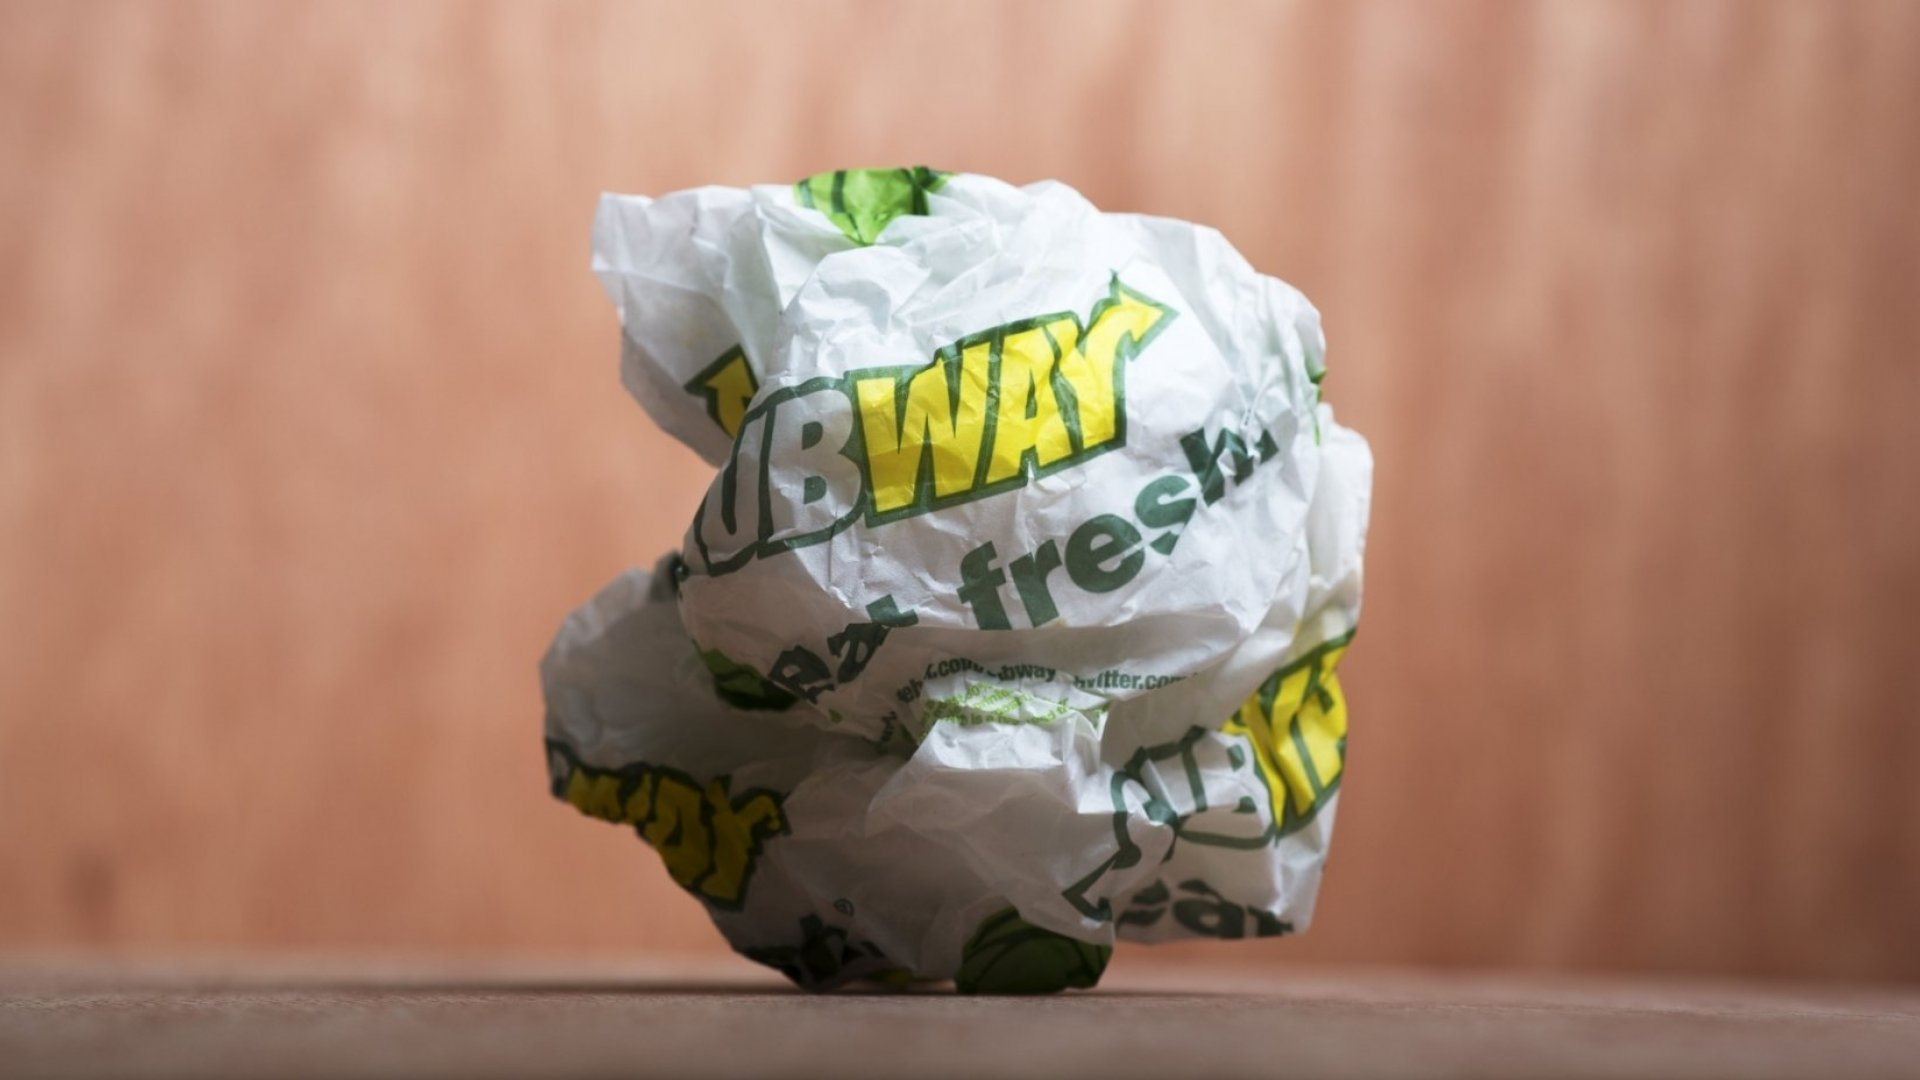 Subway Franchisees Claim They're Being Forced to Give Up Their Stores